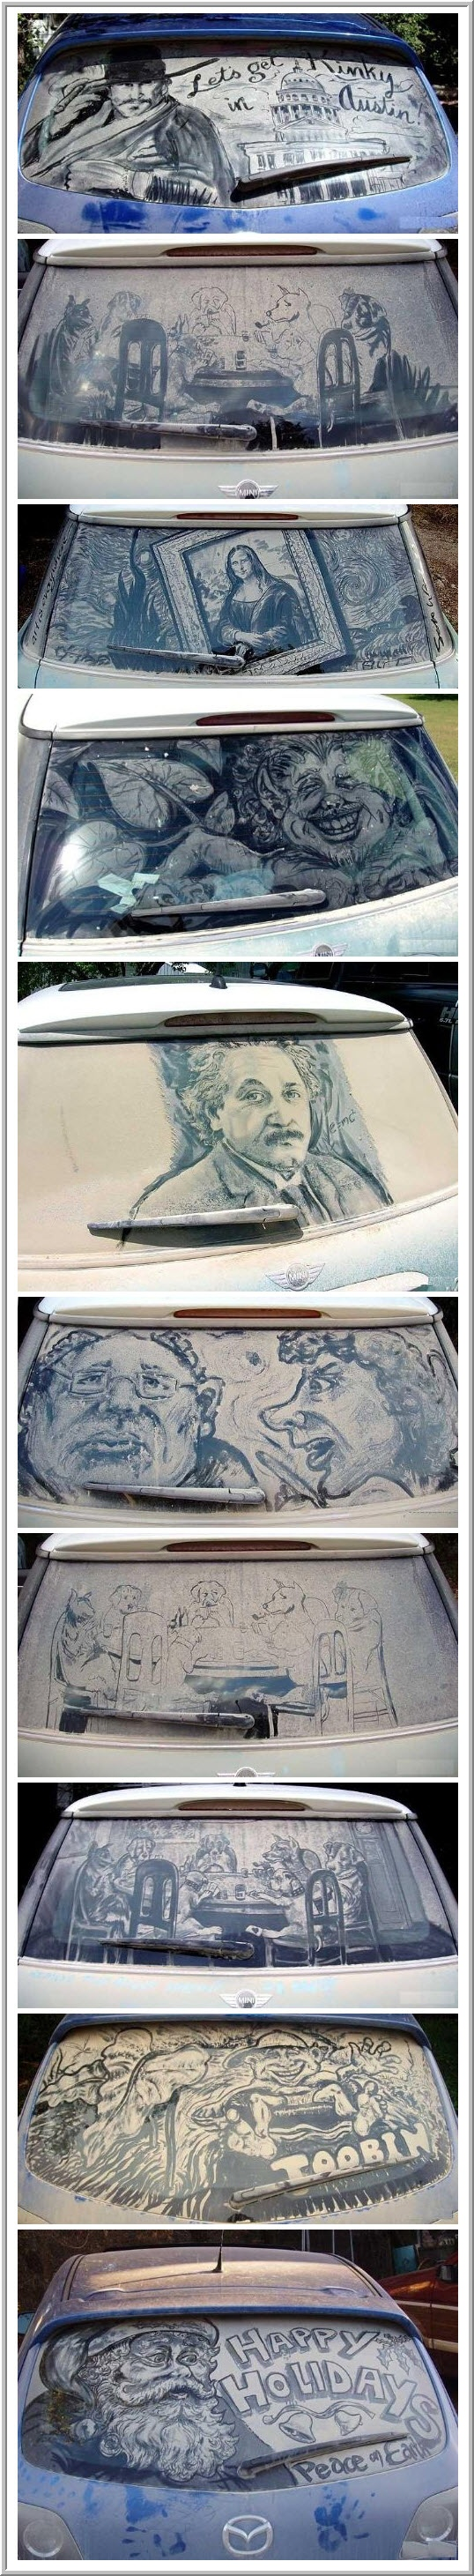 Best DIRTY CAR ART Images On Pinterest Car Artworks And - Scott wade makes wonderful art dusty car windows